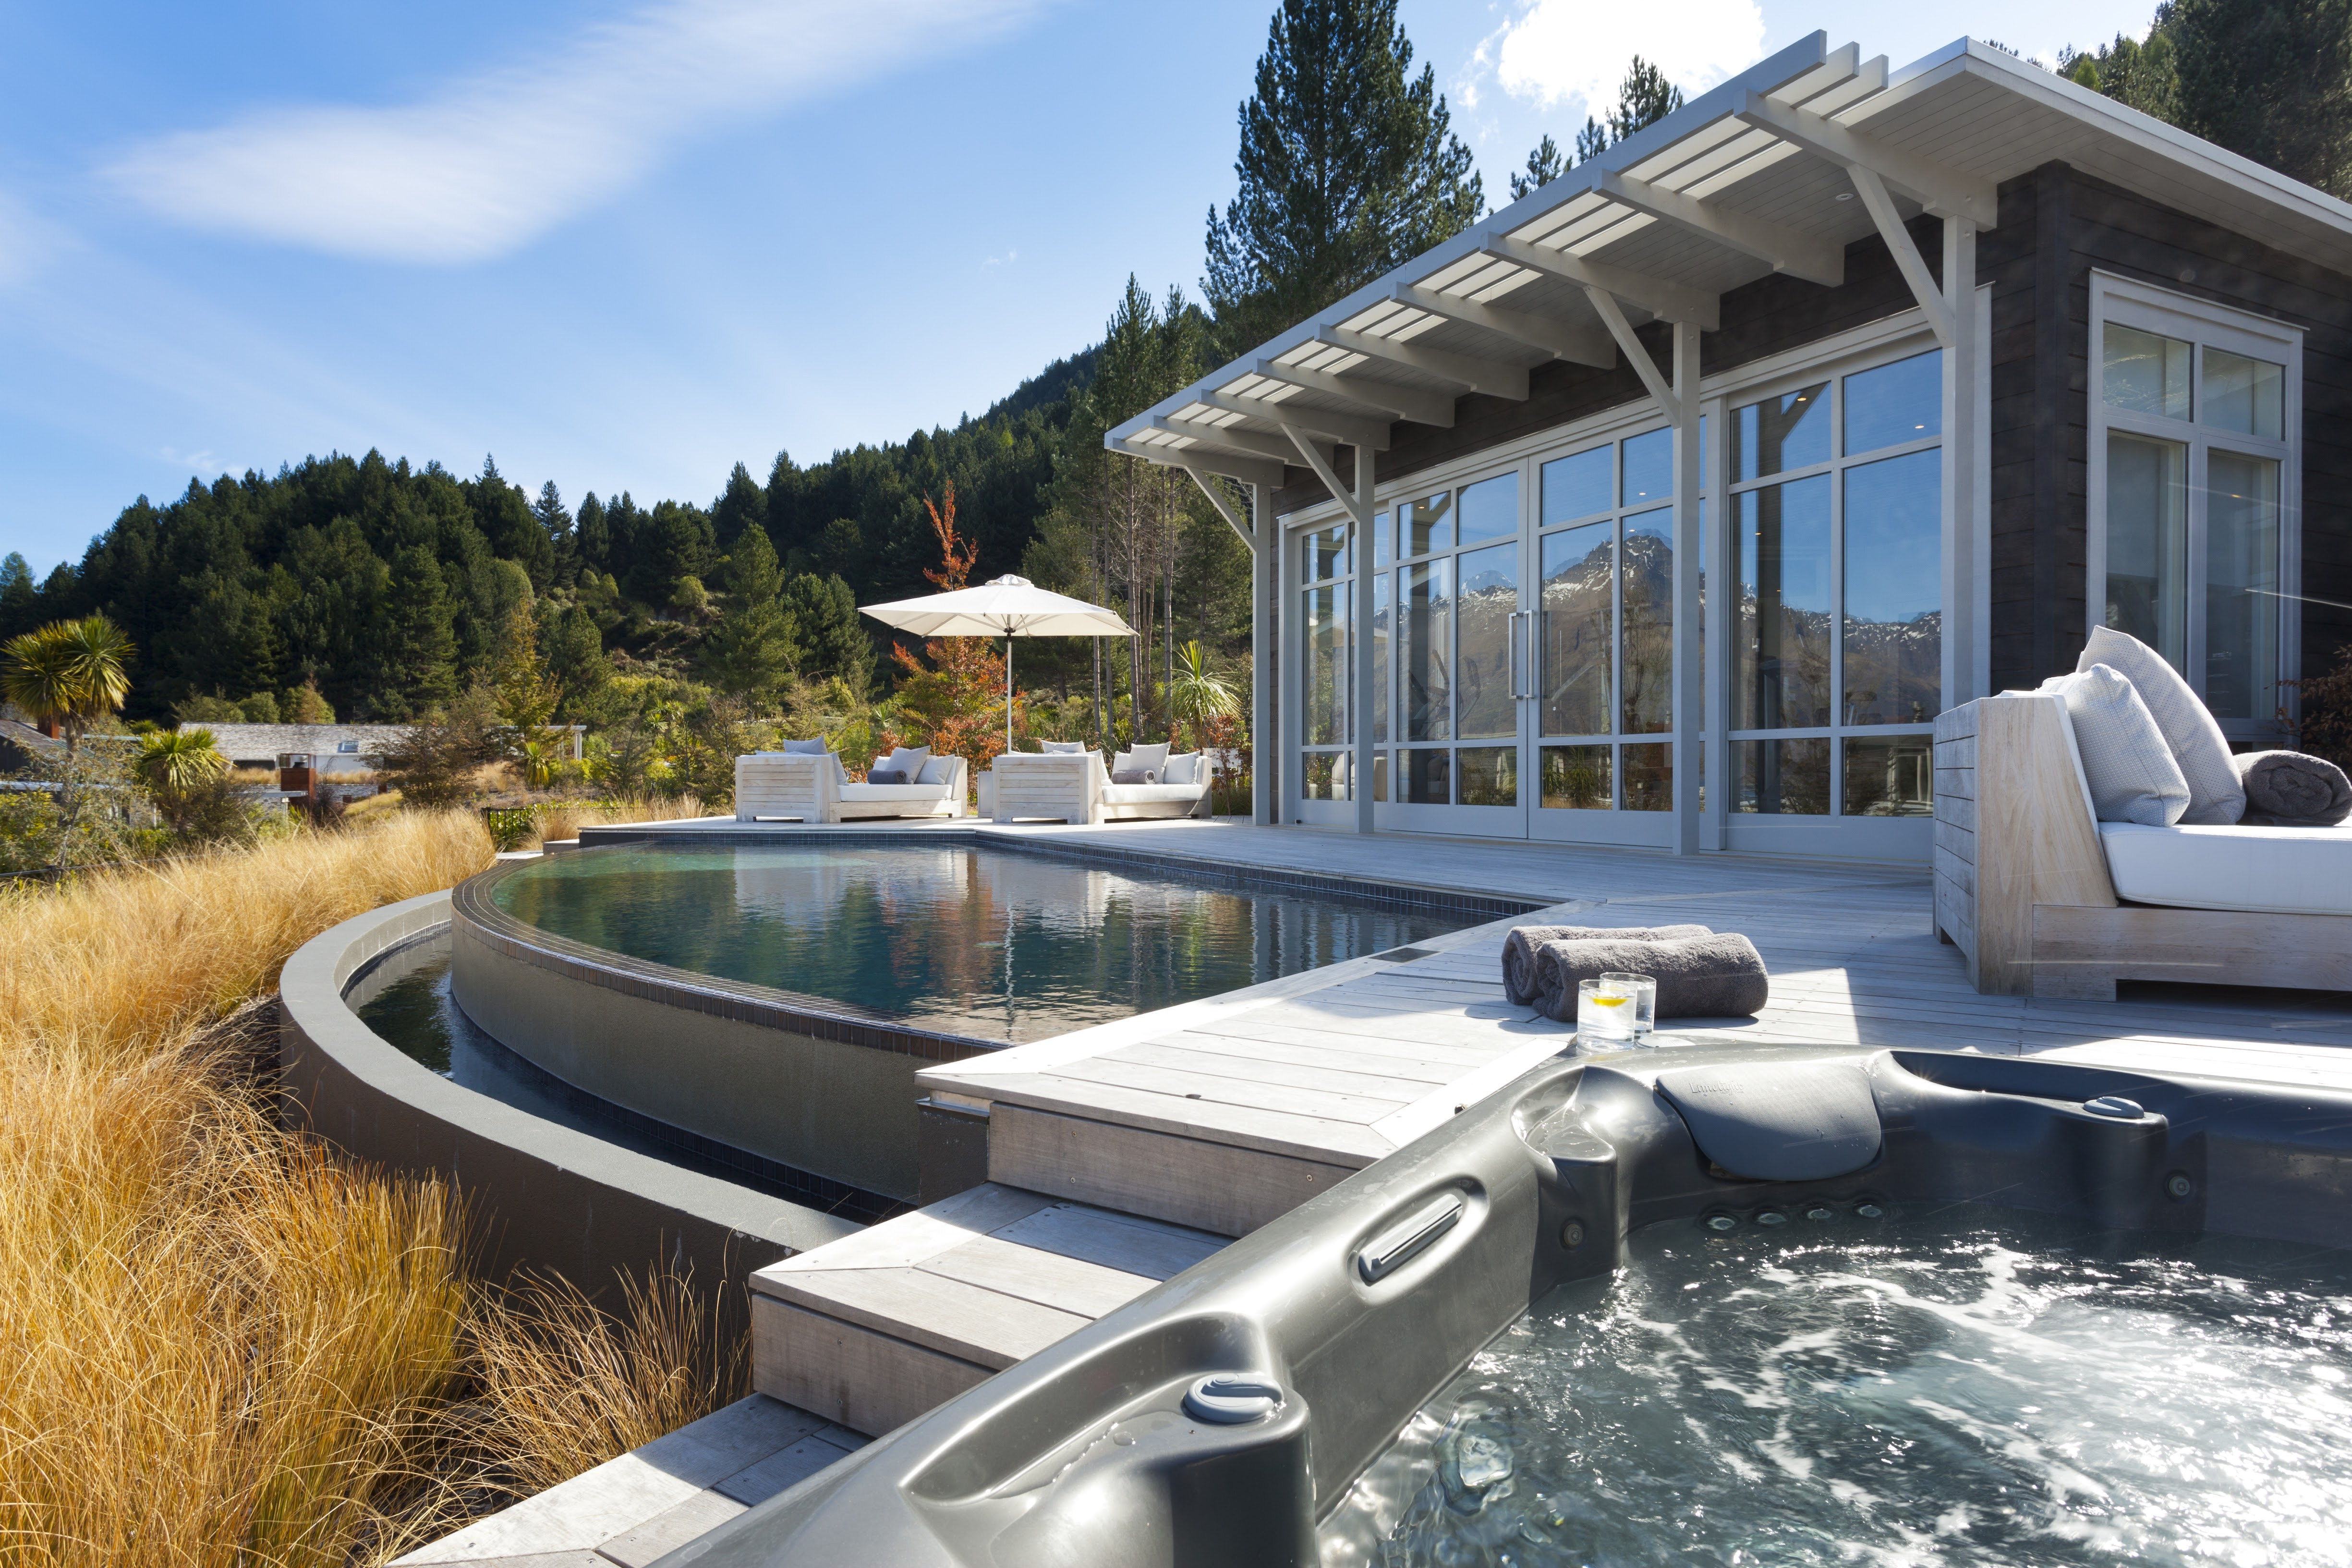 Matakauri Lodge Spa, Pool and Jacuzzi